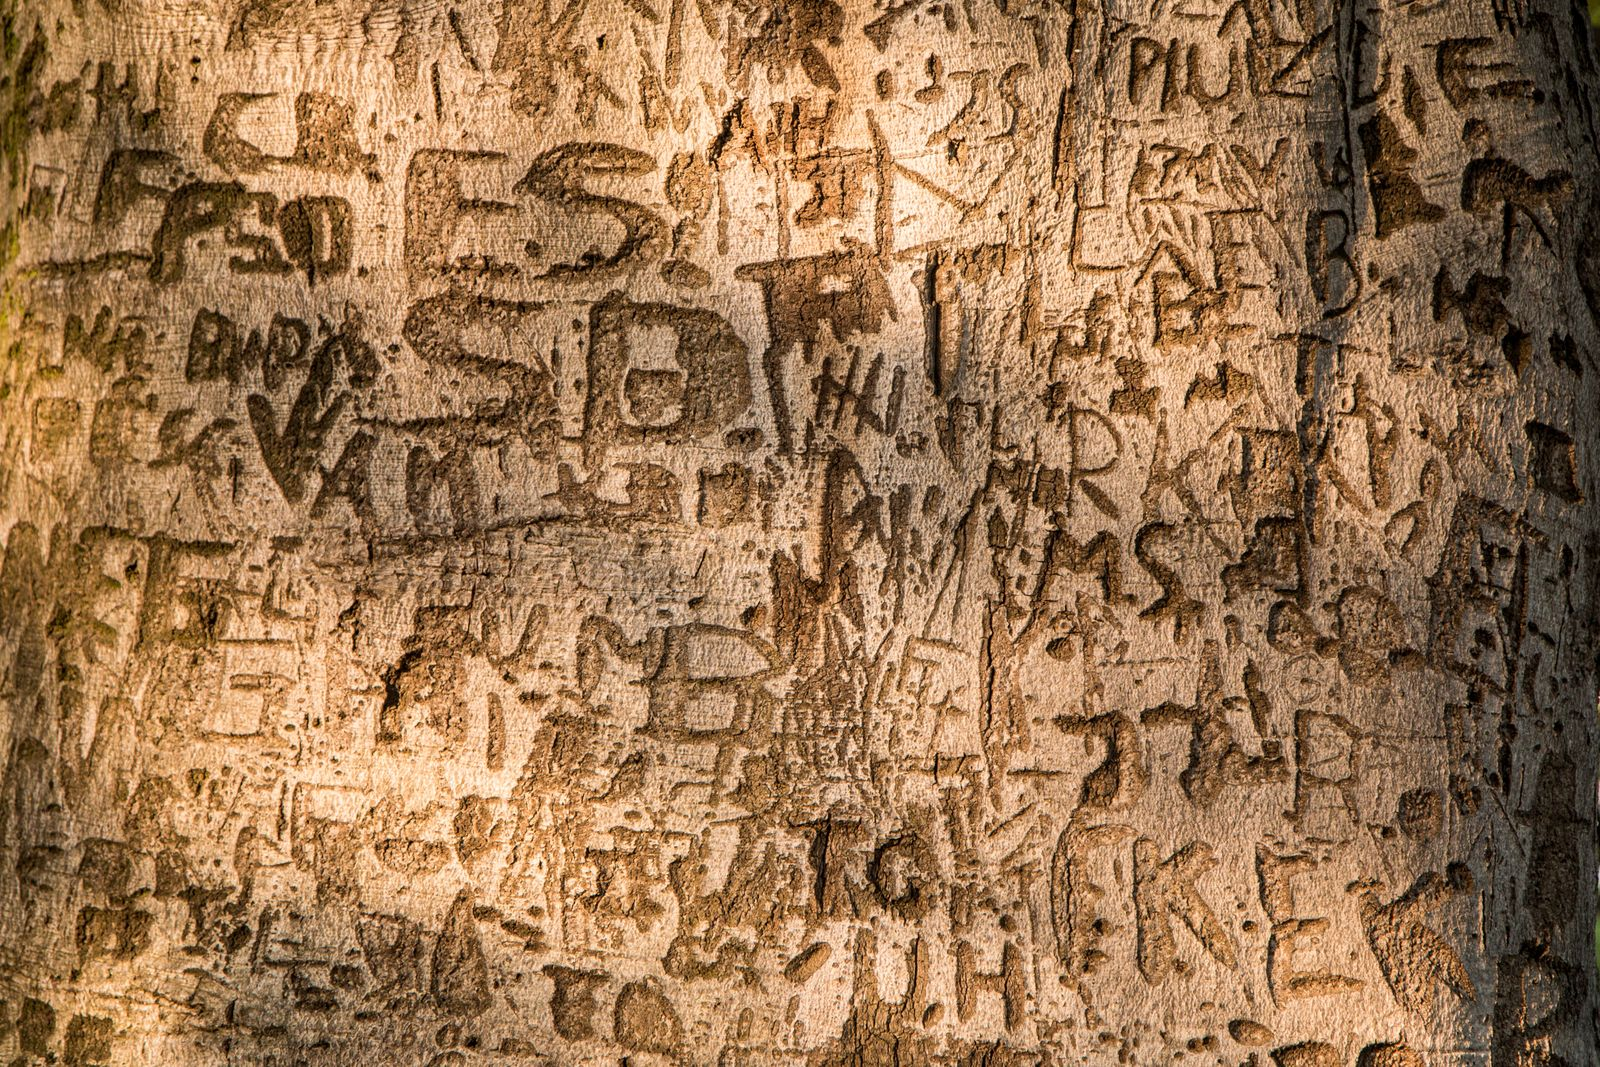 A detail picture of the carvings in a wooden bark. People are writing messages or names.